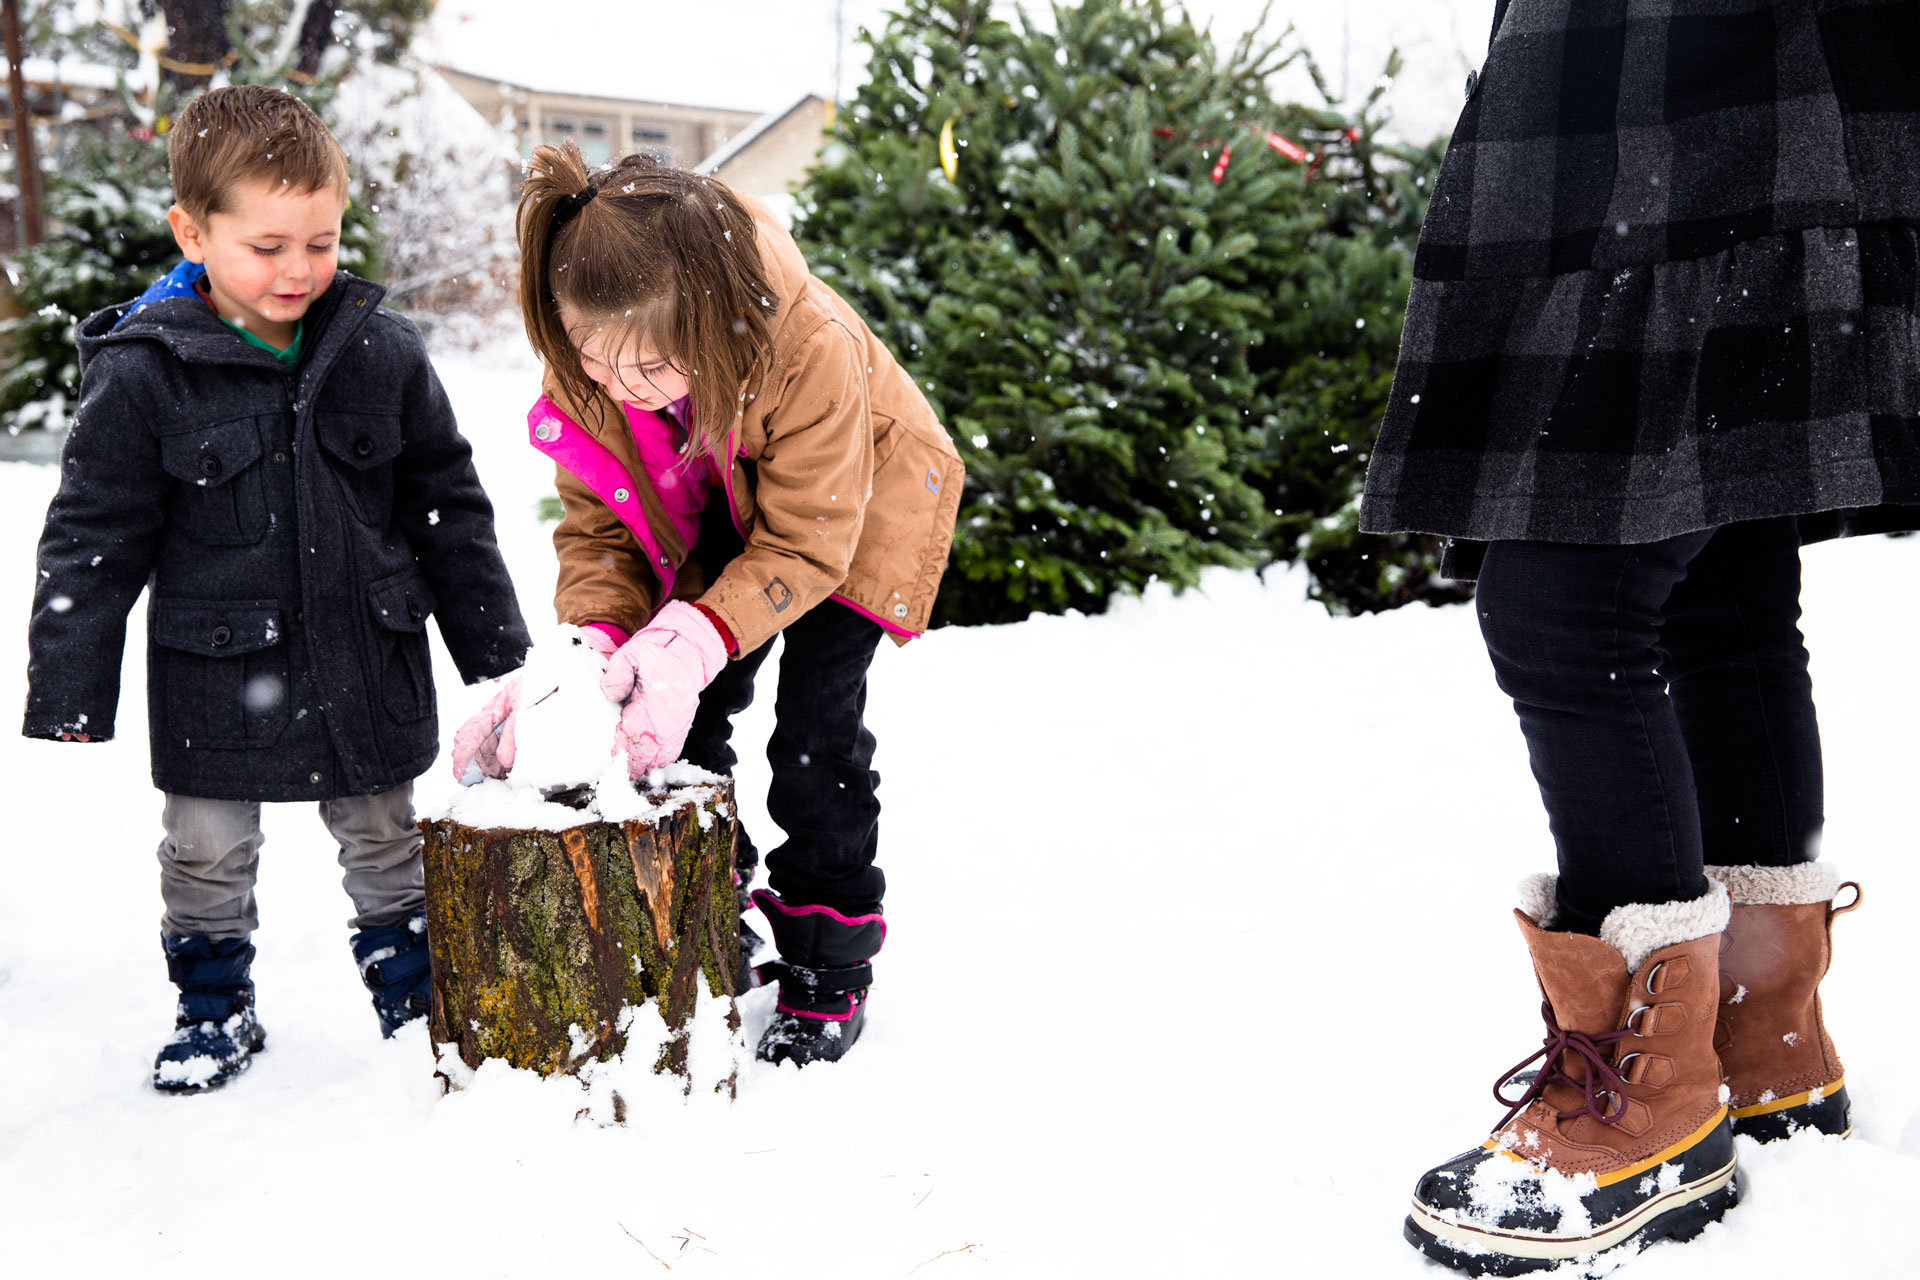 two kids building a small snow man while it snows and they are getting their Christmas Tree